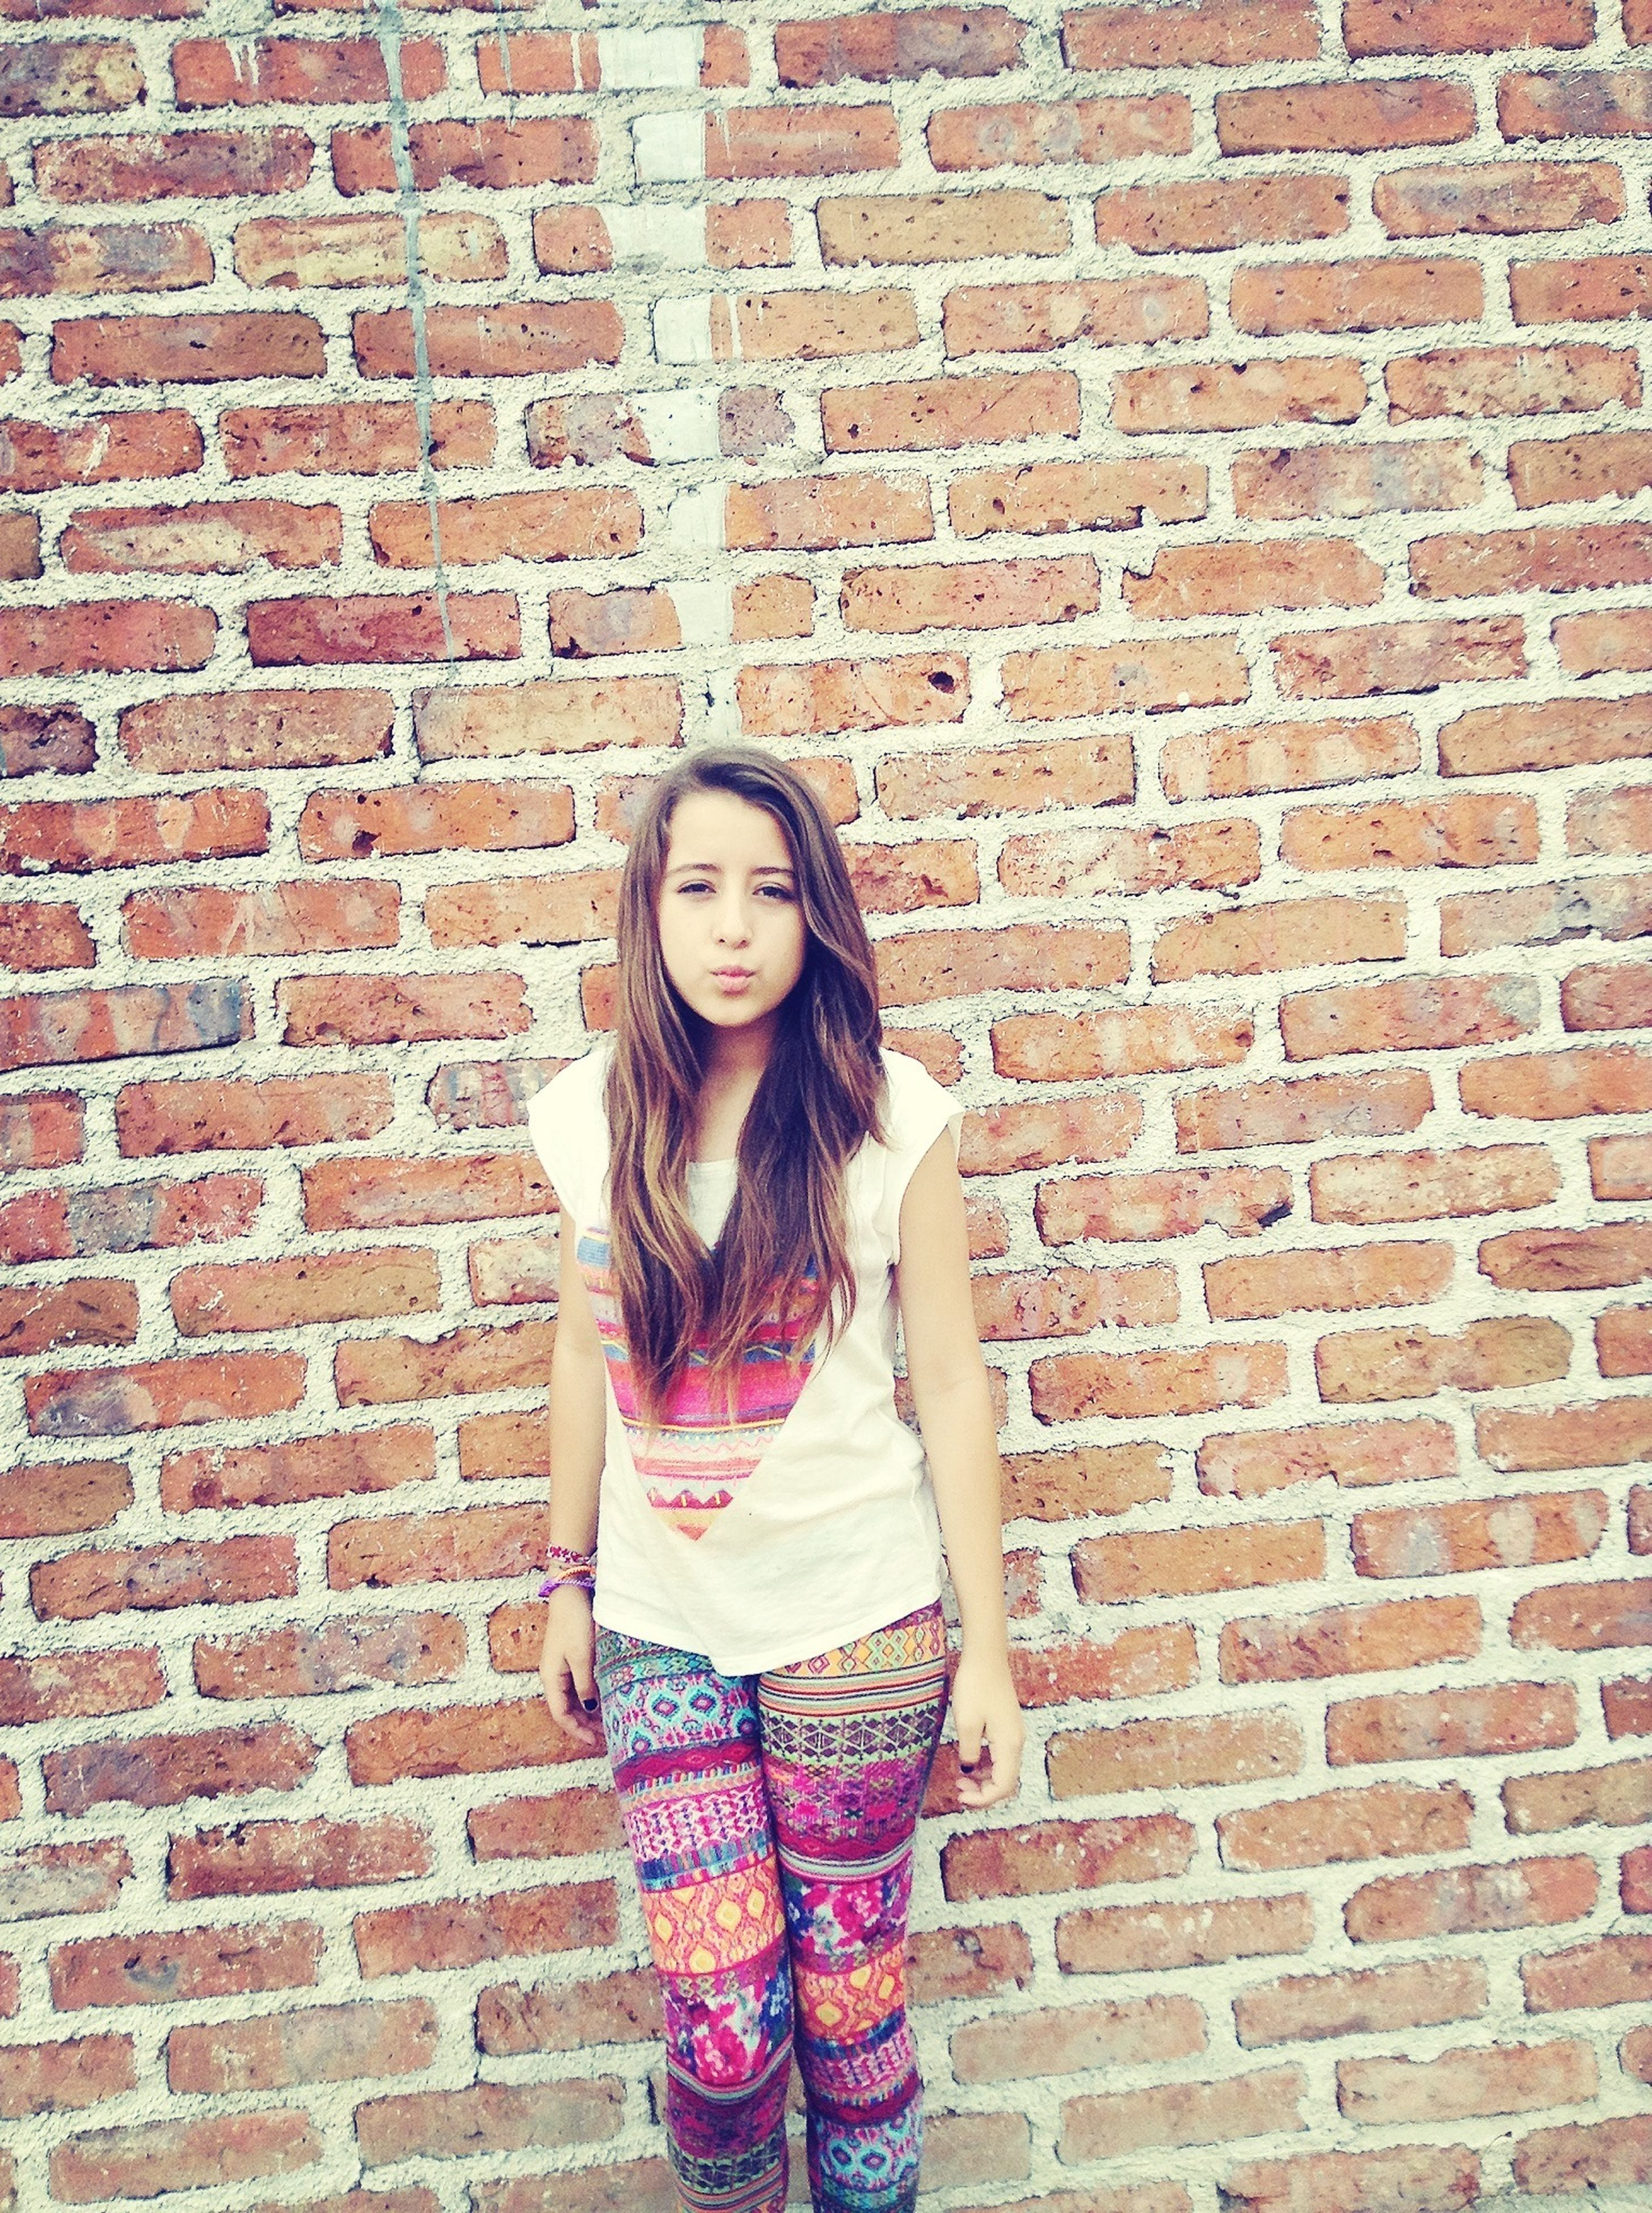 young adult, portrait, young women, person, looking at camera, lifestyles, front view, brick wall, standing, casual clothing, long hair, smiling, wall - building feature, leisure activity, three quarter length, happiness, red